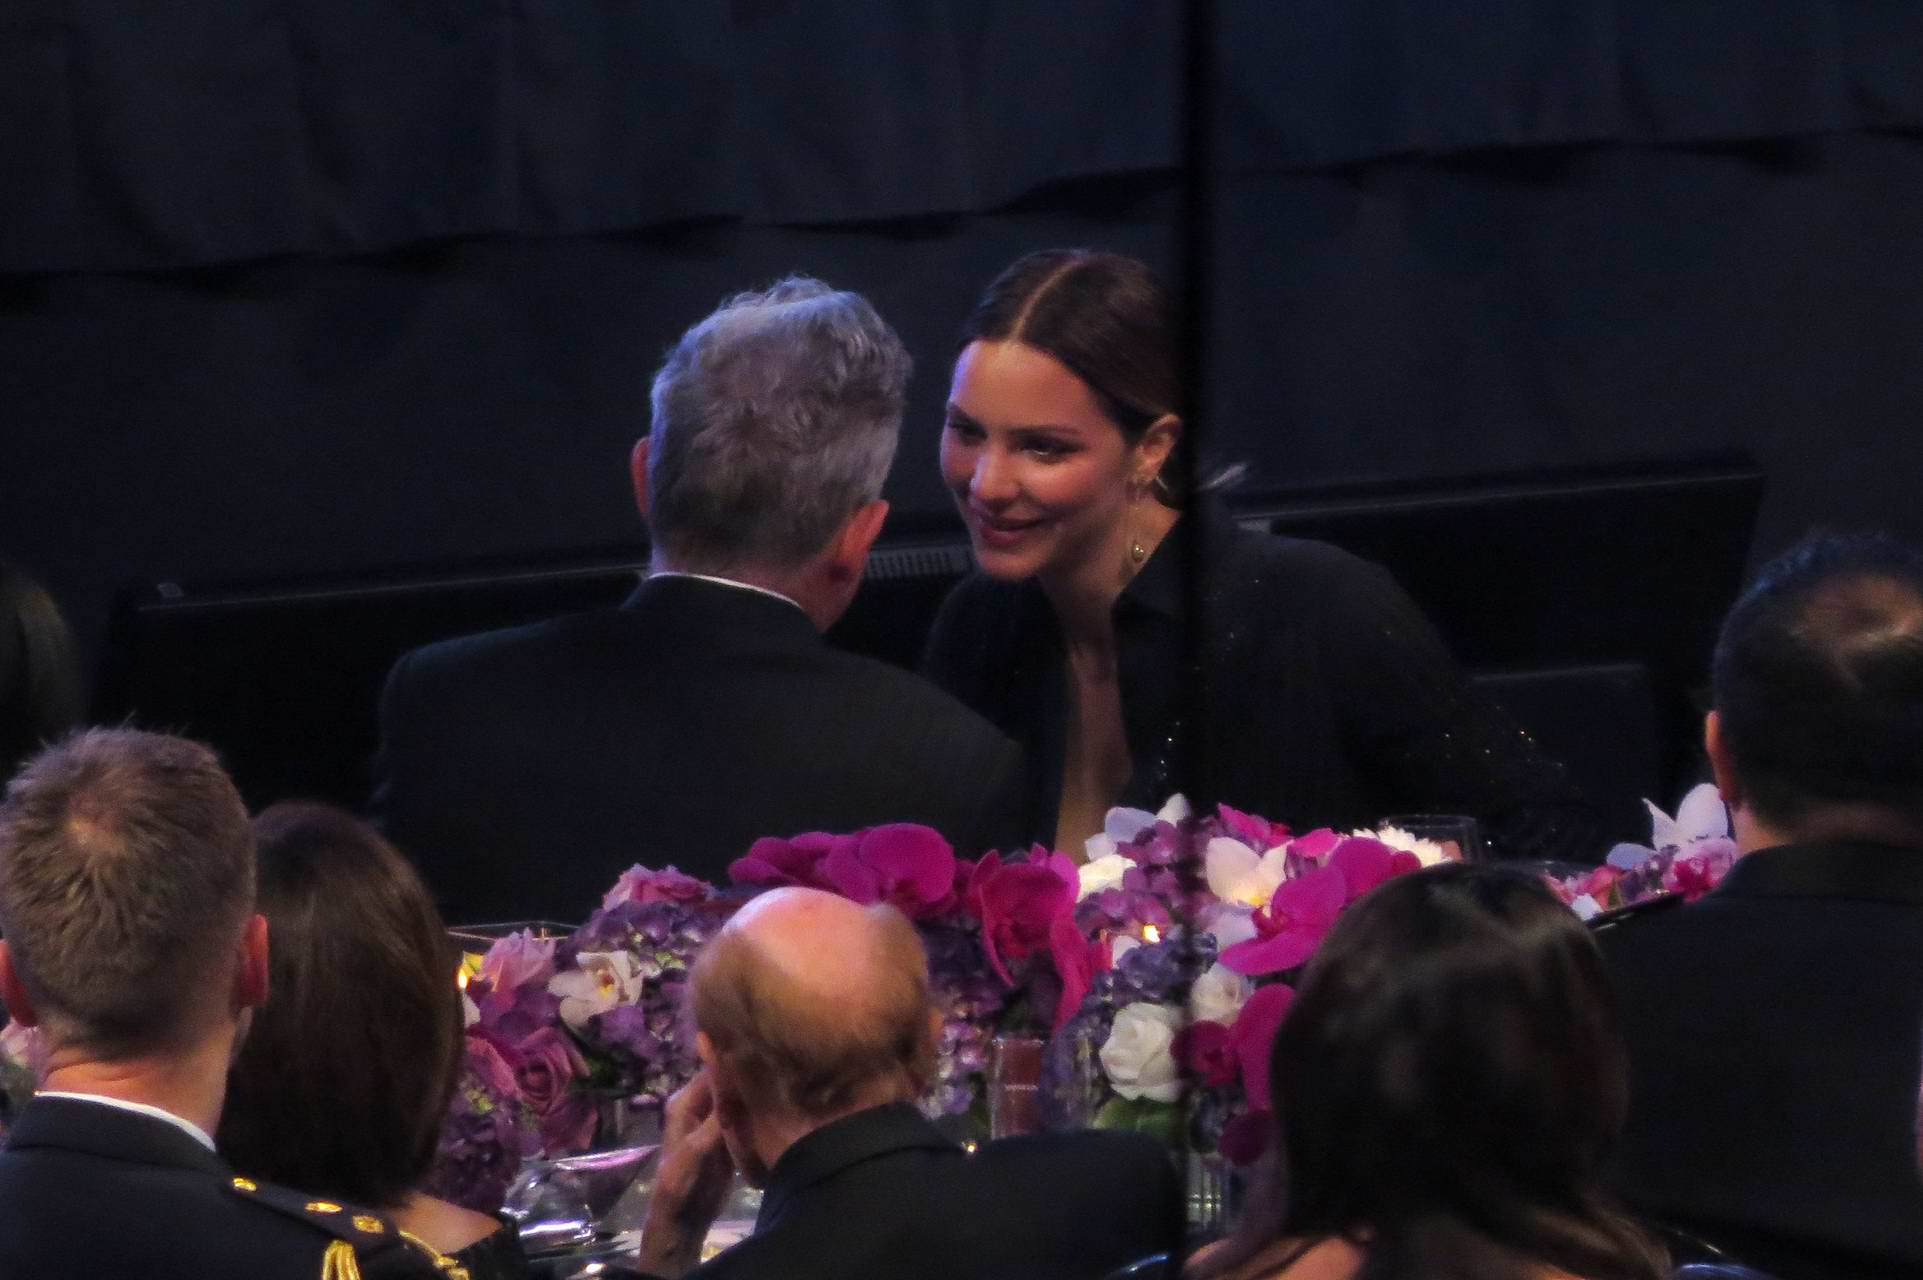 Katharine McPhee and David Foster appear intimate during The David Foster Foundation Miracle Gala & Concert in Vancouver, Canada